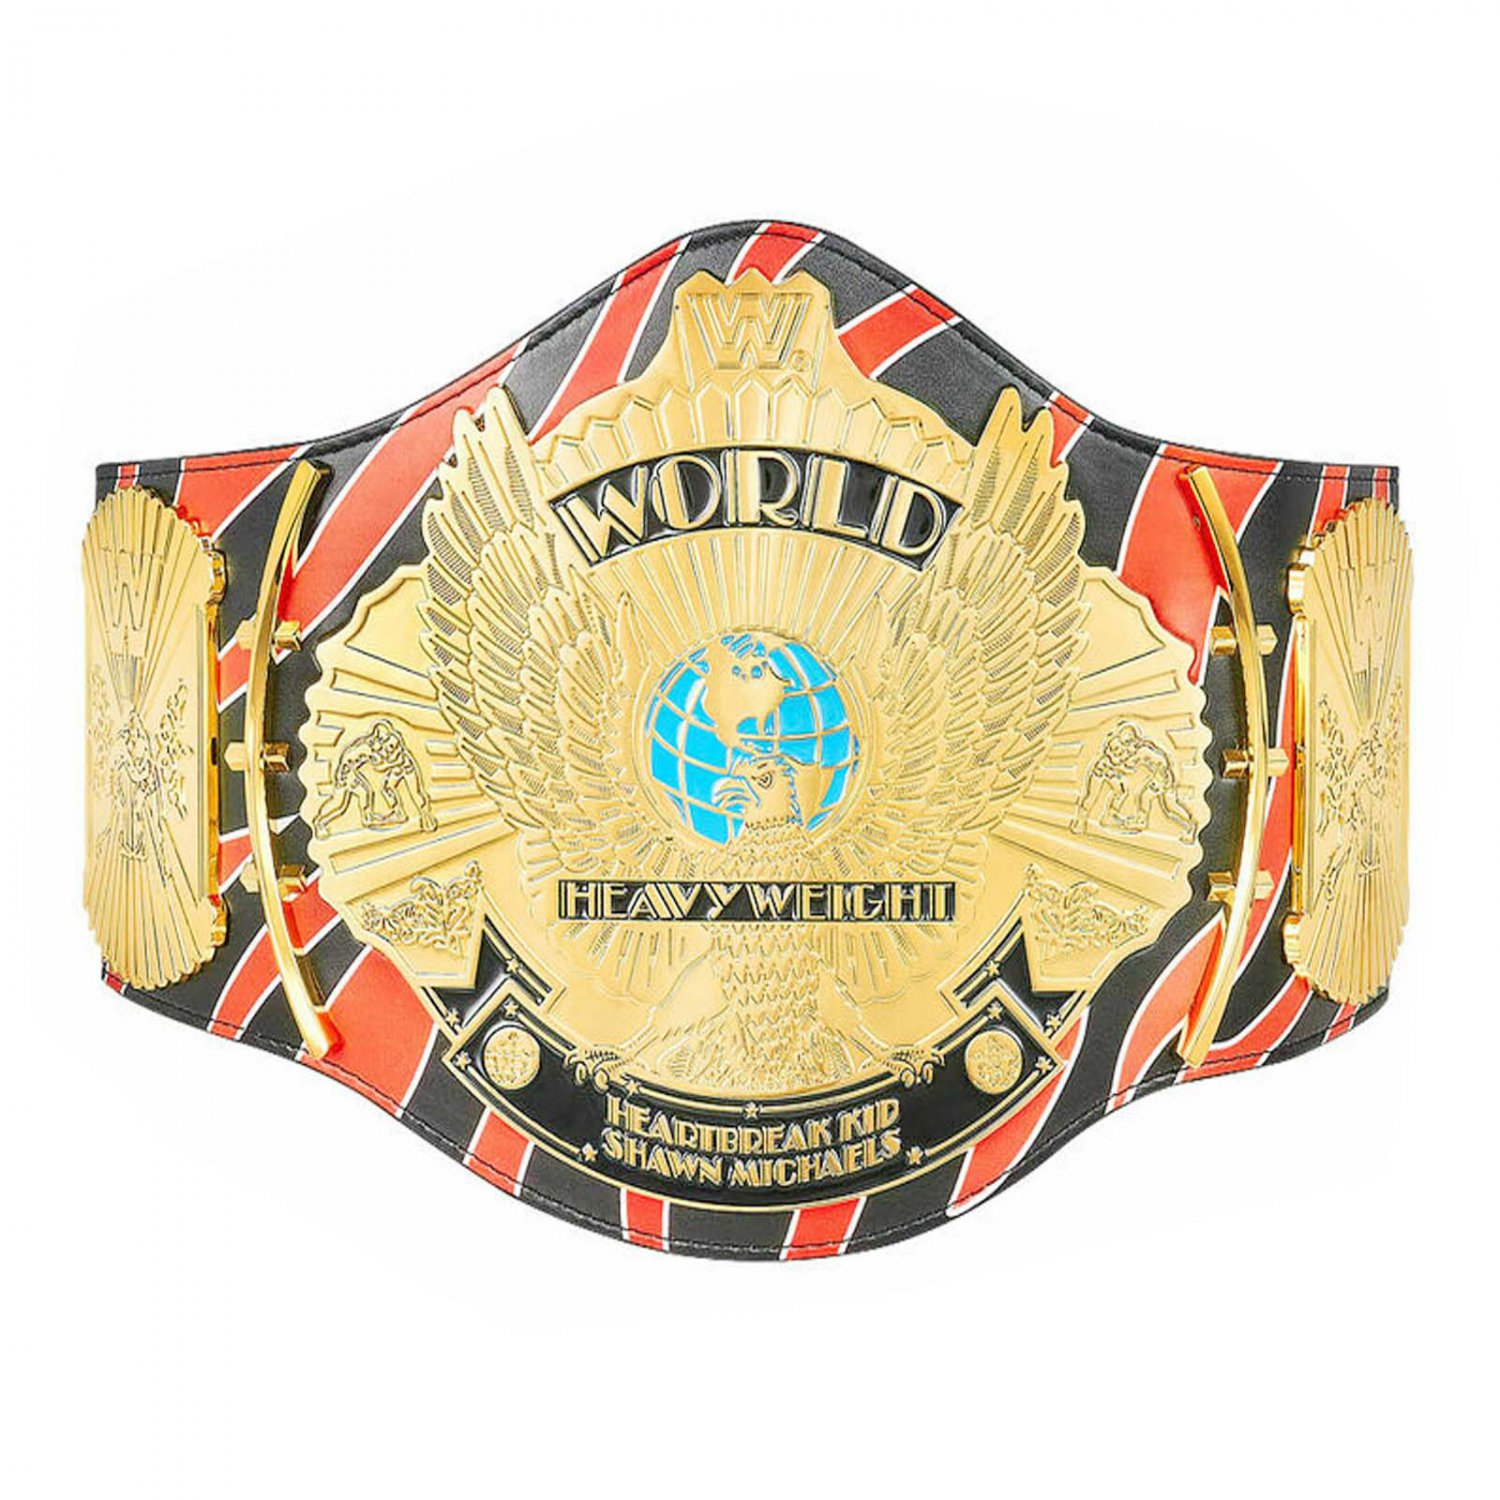 SHAWN MICHAEL SIGNATURE SERIES WINGED EAGLE WRESTLING CHAMPIONSHIP BELT BLACK LEATHER STRAP